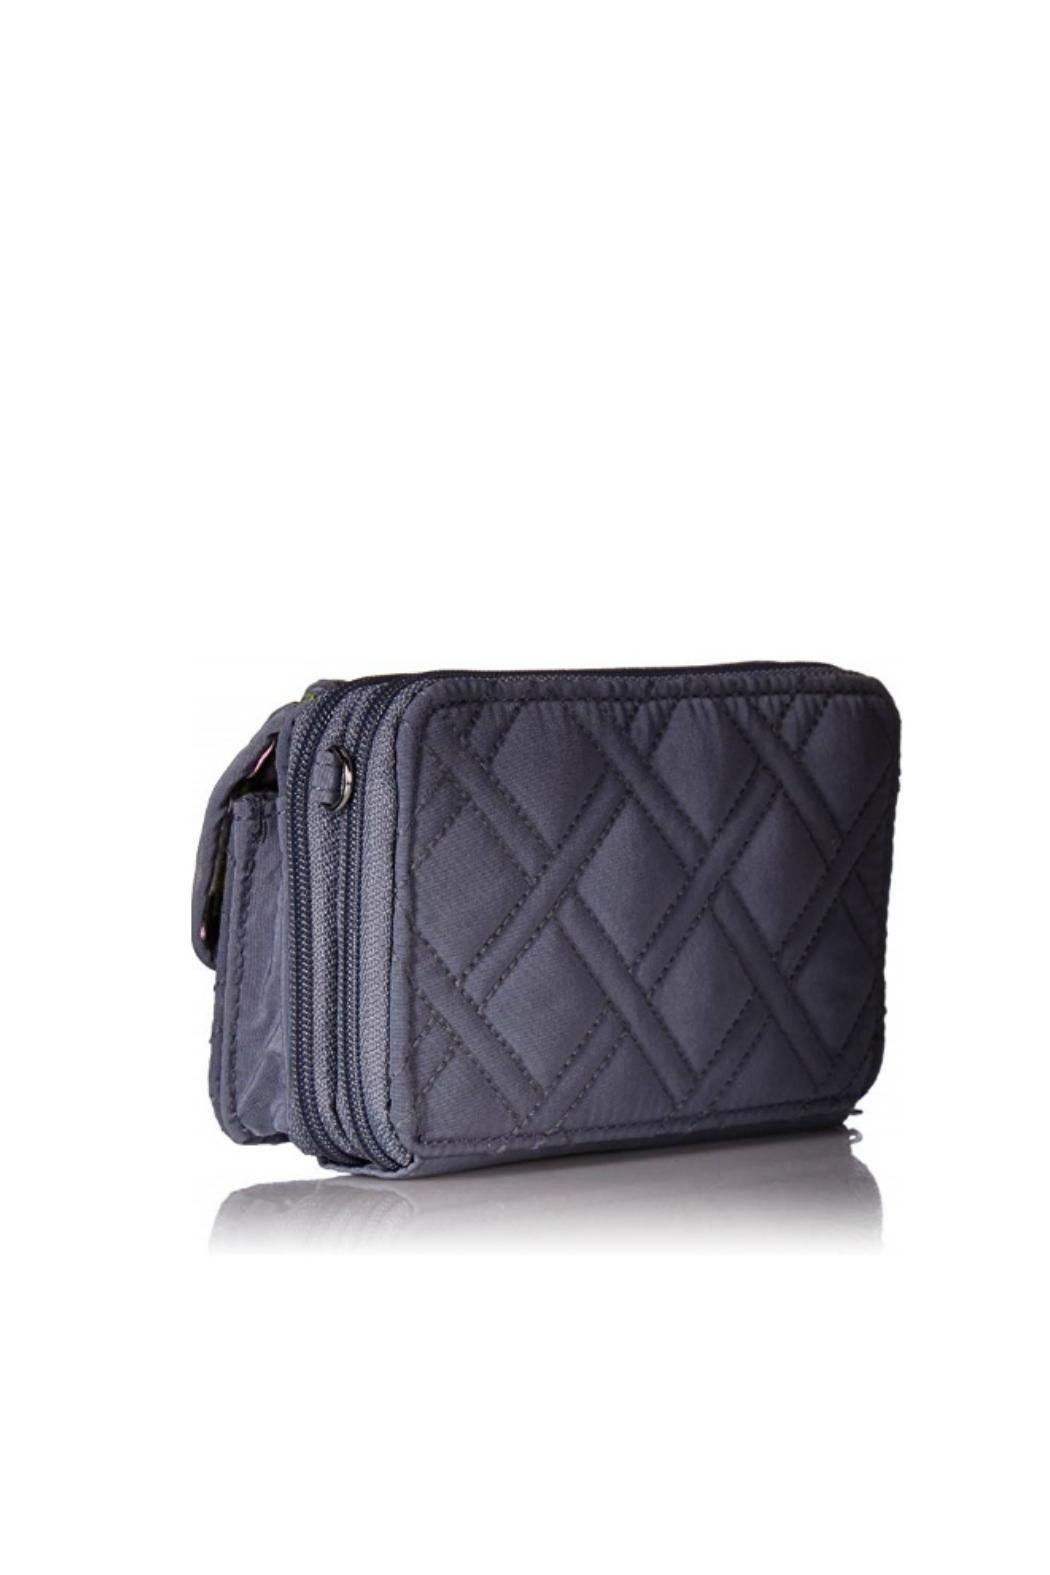 Vera Bradley Charcoal All-In-One Crossbody - Front Full Image